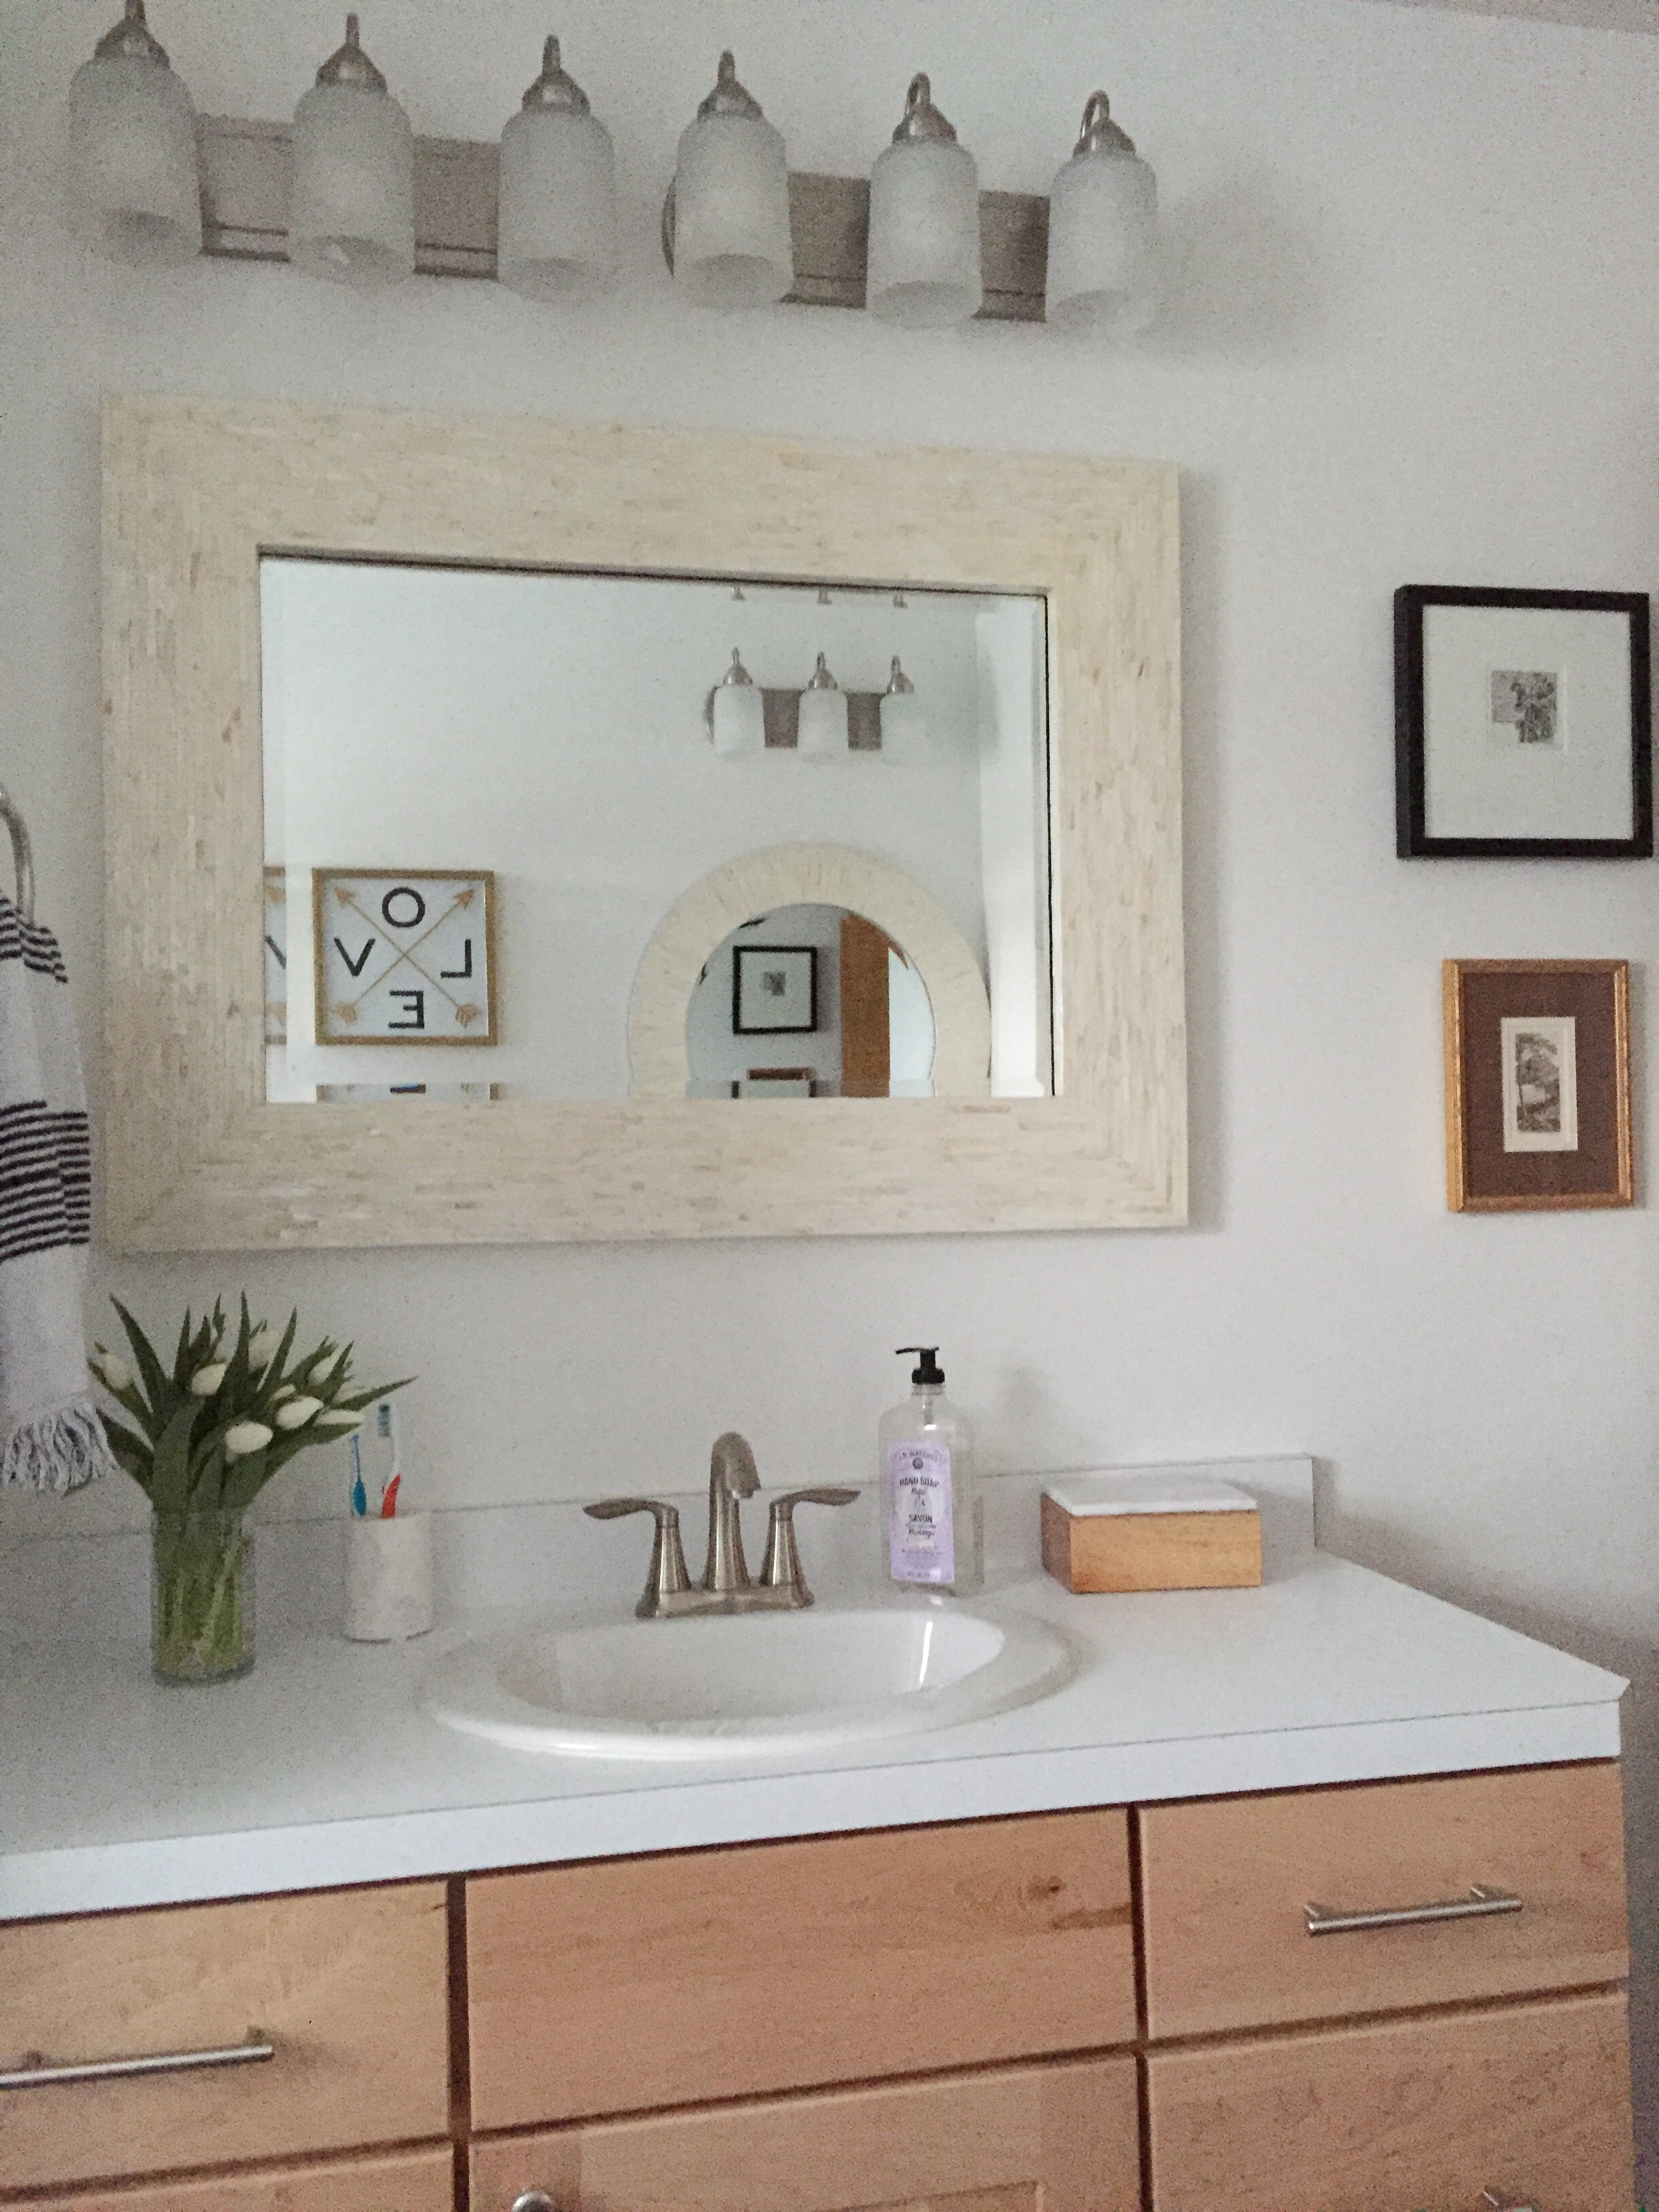 The Light Fixtures, Which I Donu0027t Love But Donu0027t Hate, Are From Lowes.  (Light Fixtures For Vanities Are So Hard!) I Found The Mother Of Pearl  Mirrors At ...